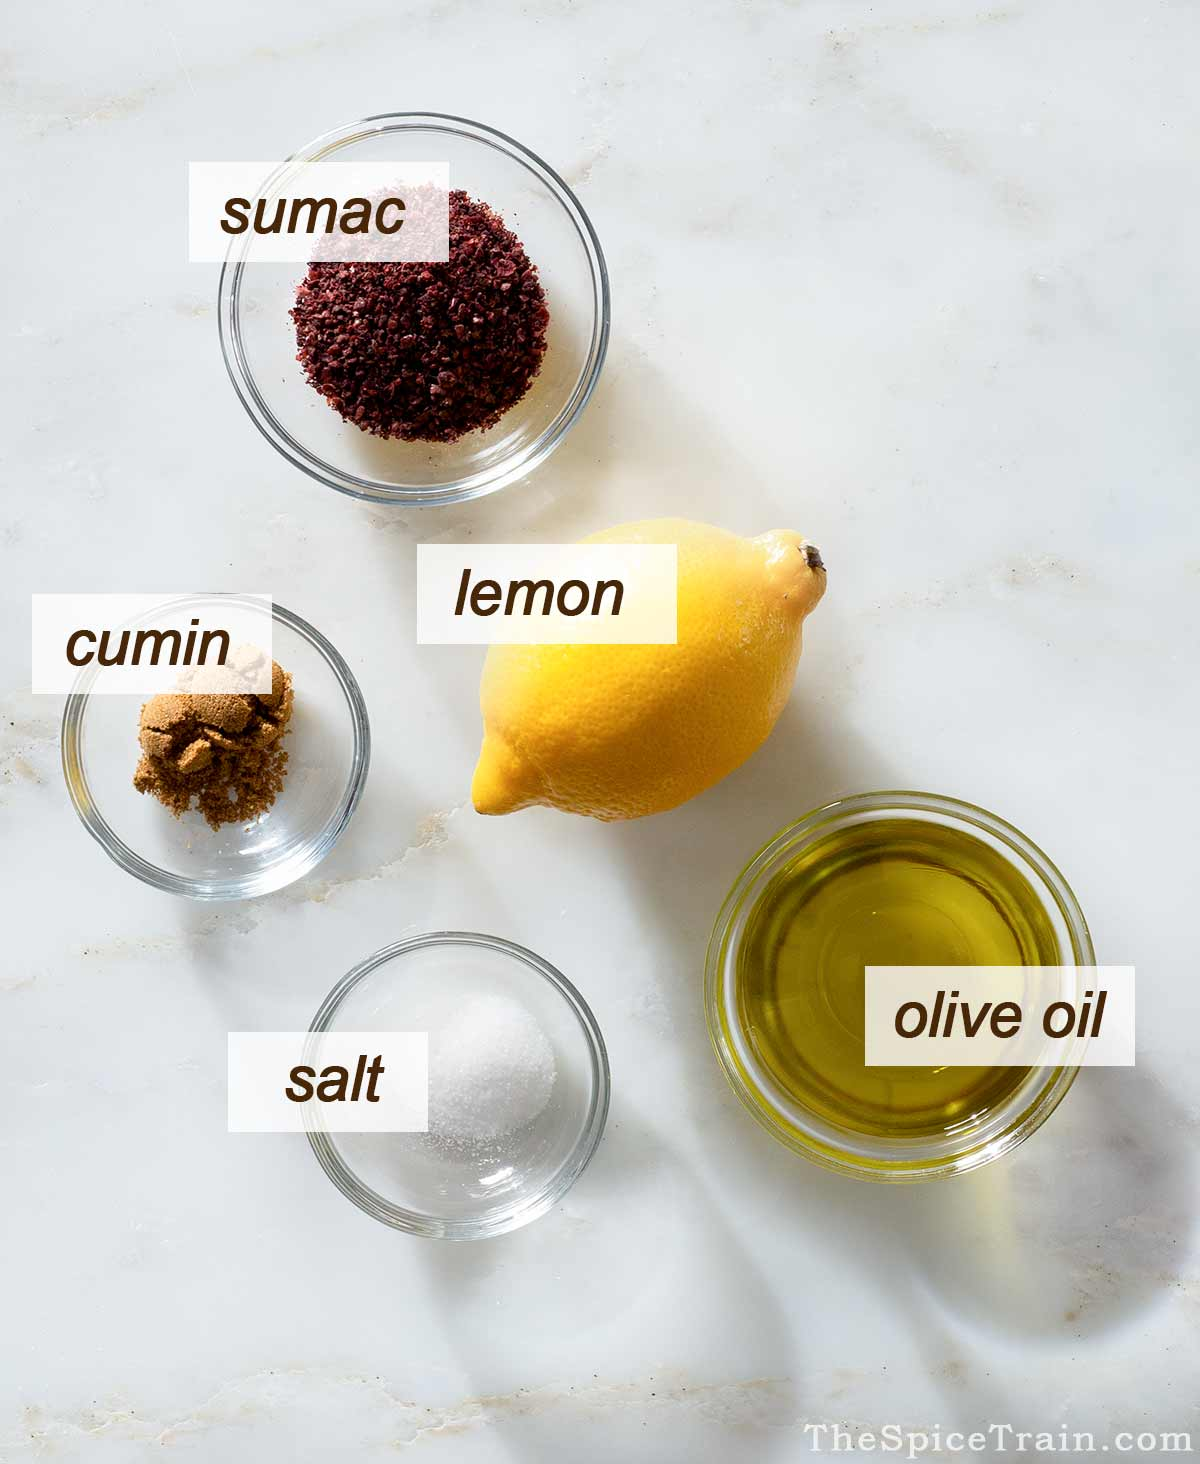 Sumac dressing ingredients on a kitchen counter.